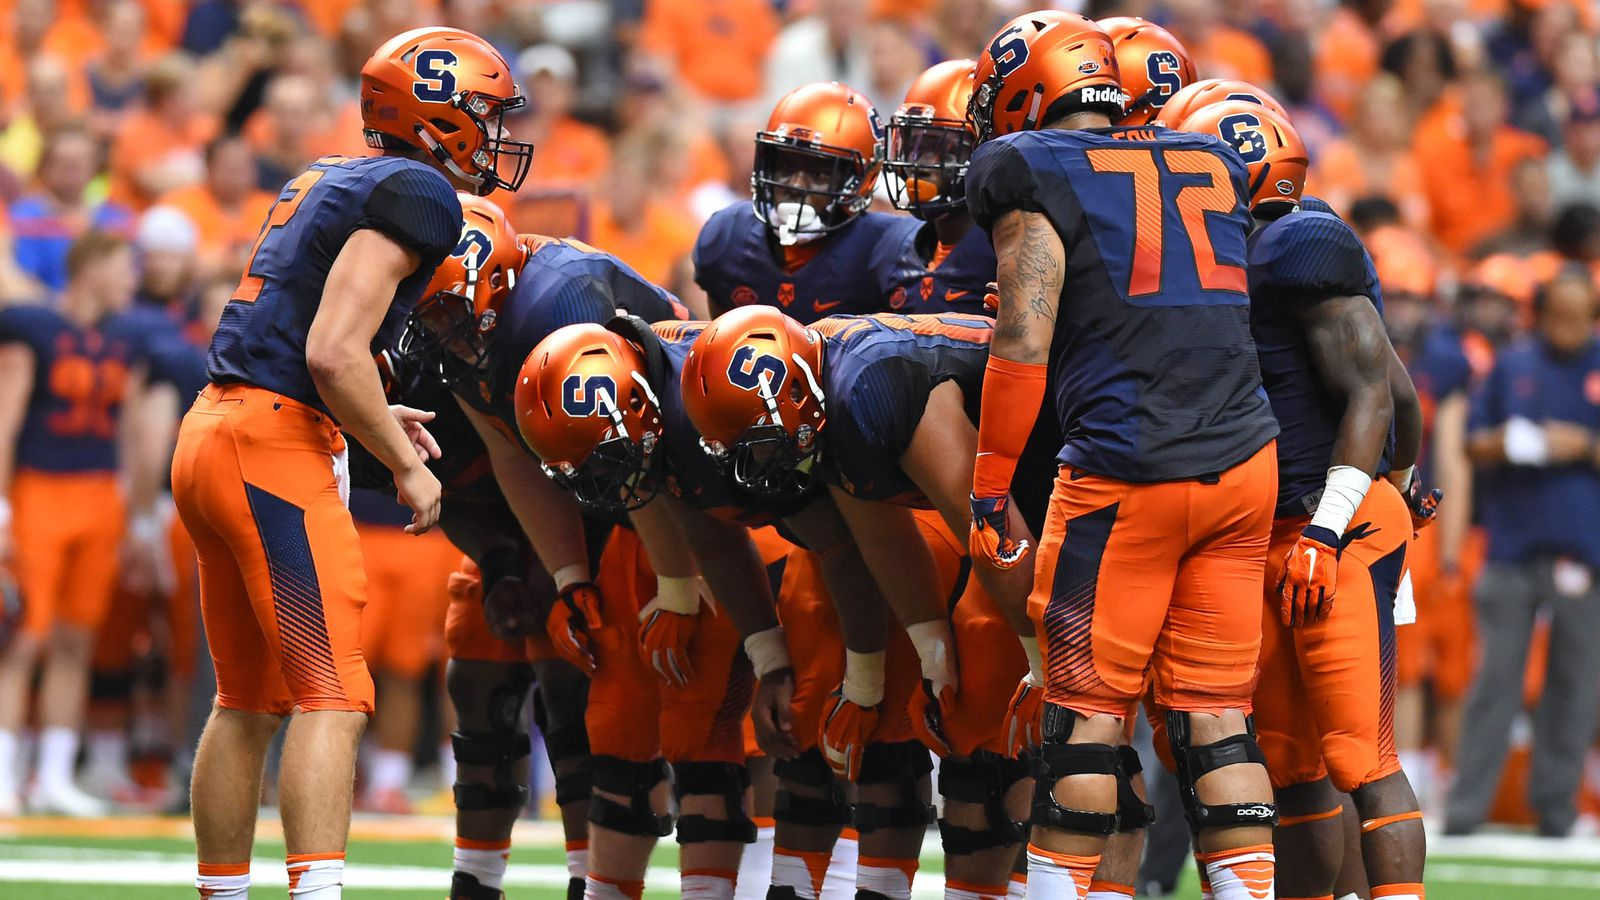 Syracuse Football: Eric Dungey Starting at QB is Only Depth Chart Change vs. Wake Forest - Troy ...